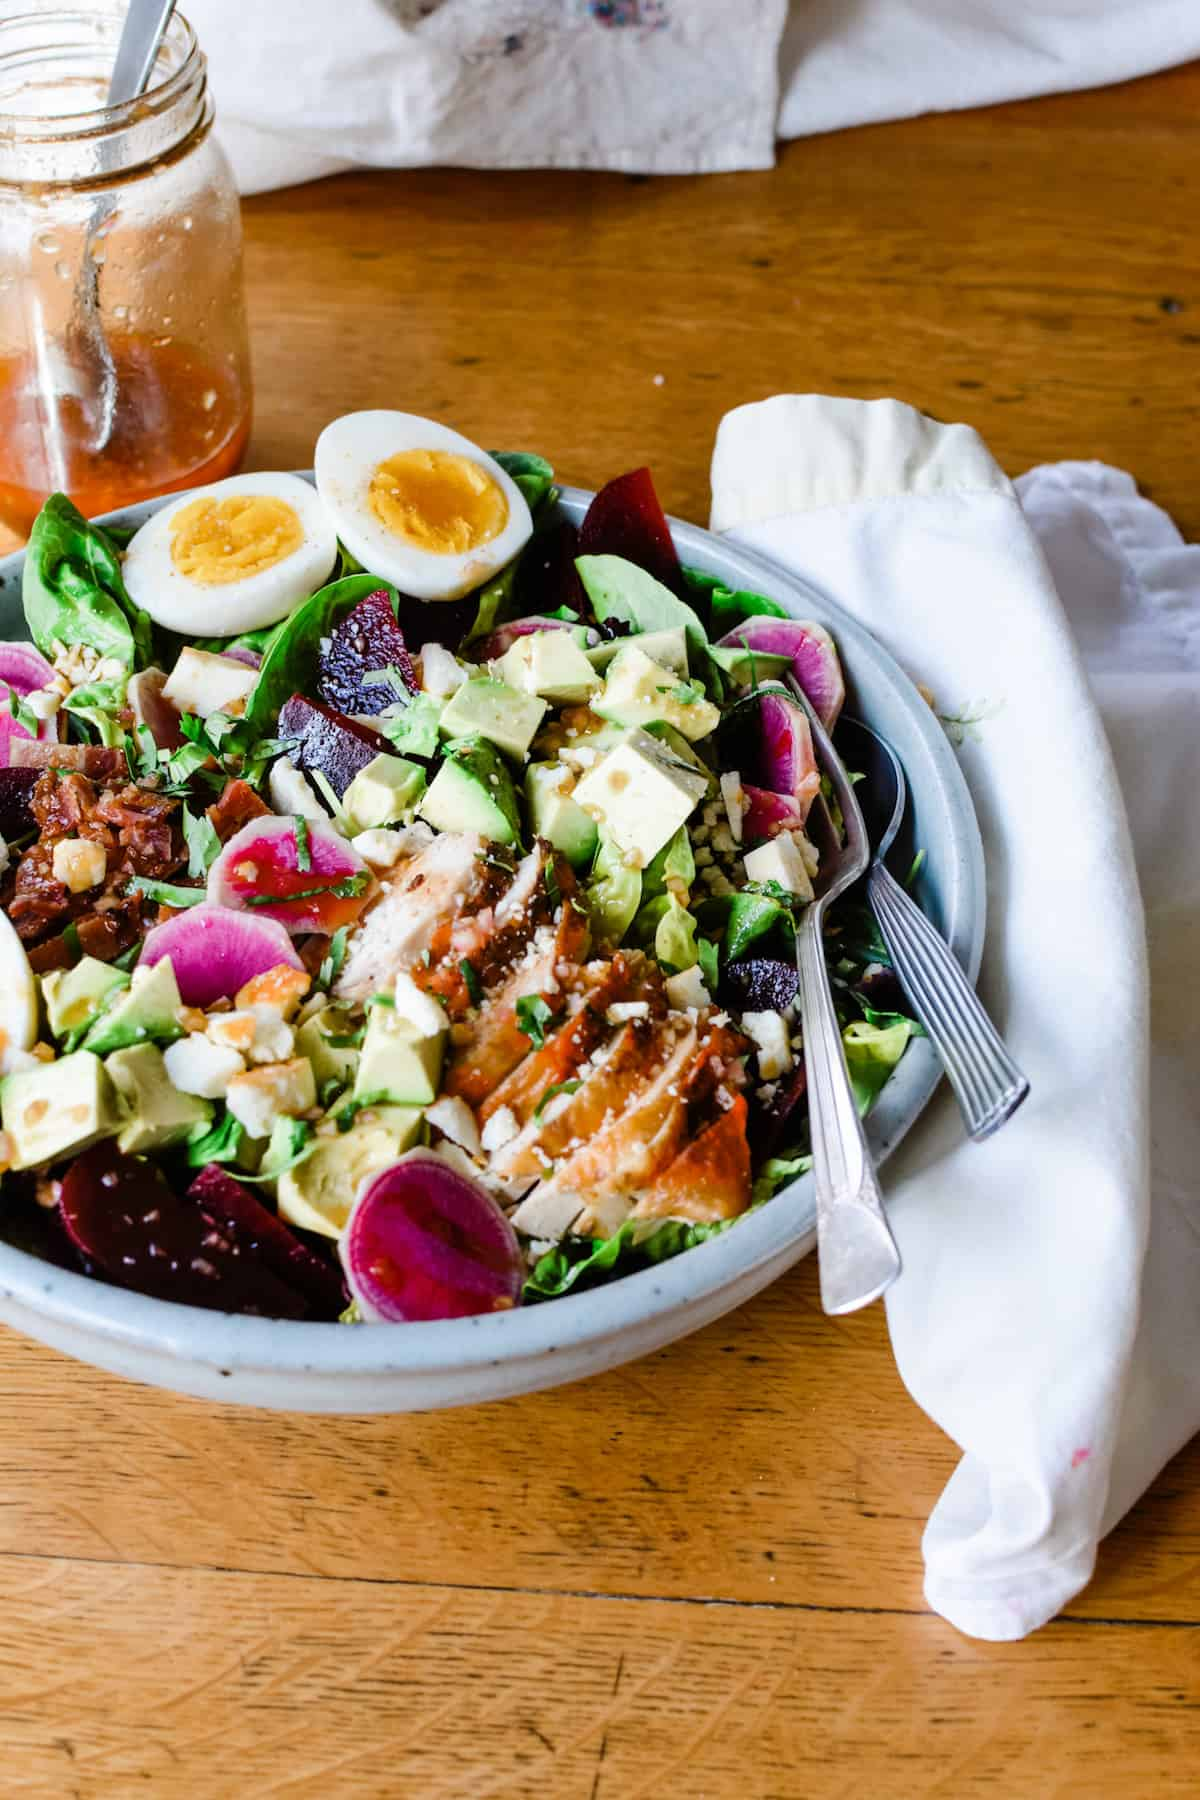 A Cobb Salad recipe made with chicken, feta, avocado, and lettuce in a big bowl on a wooden table.